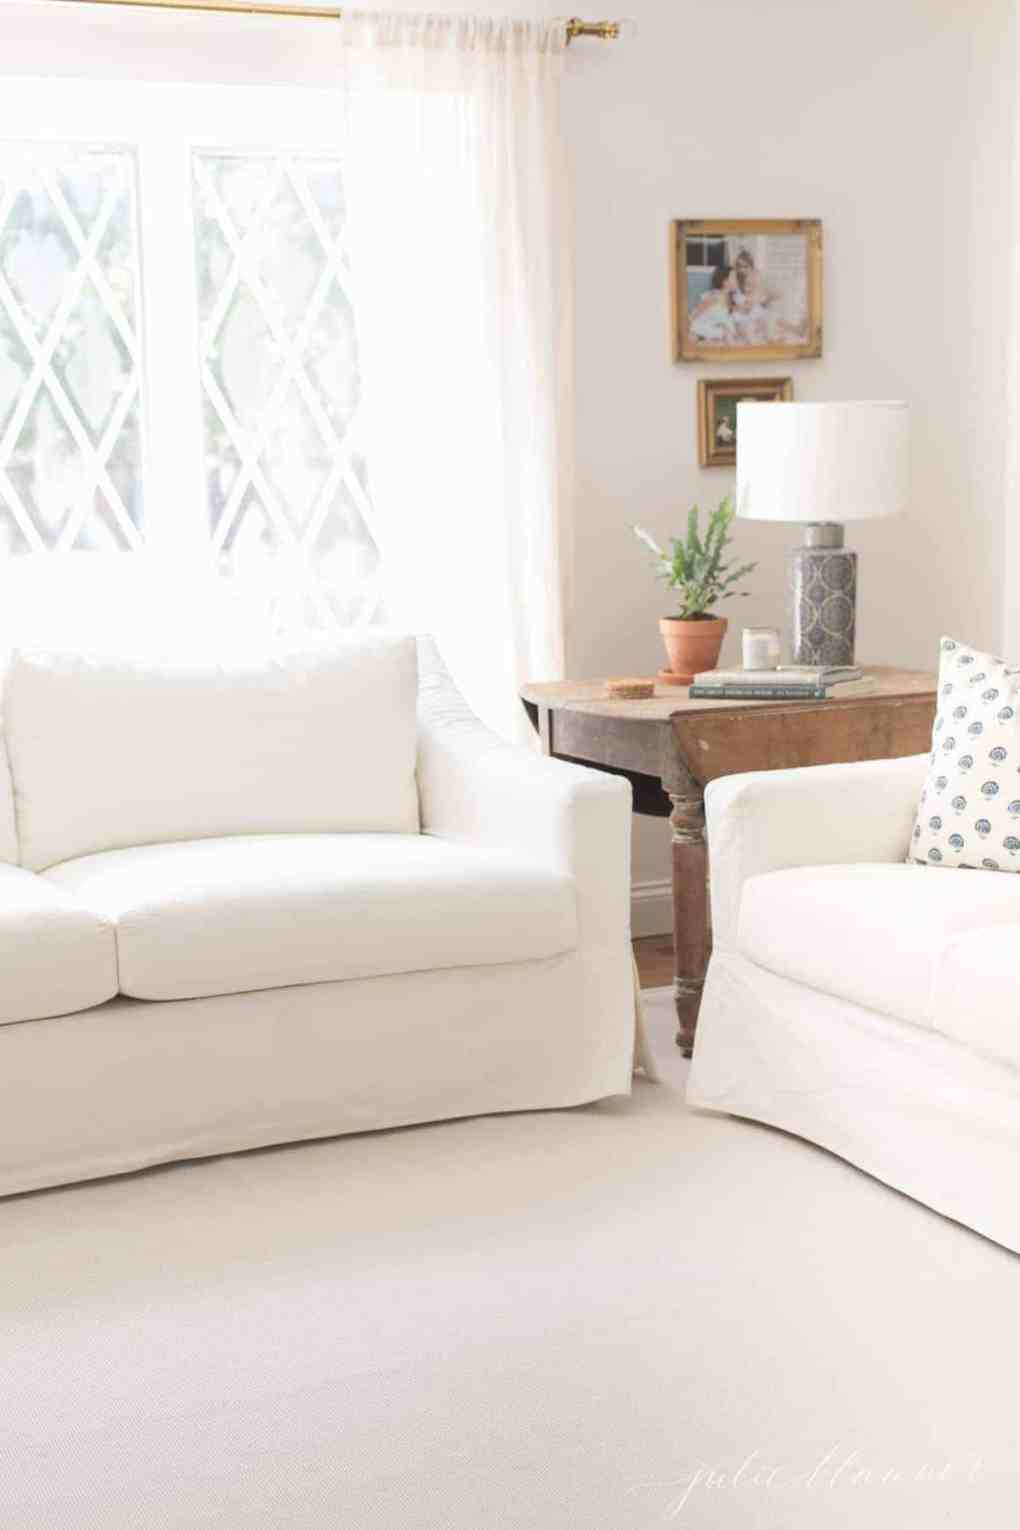 Two white sofas in a neutral living room.